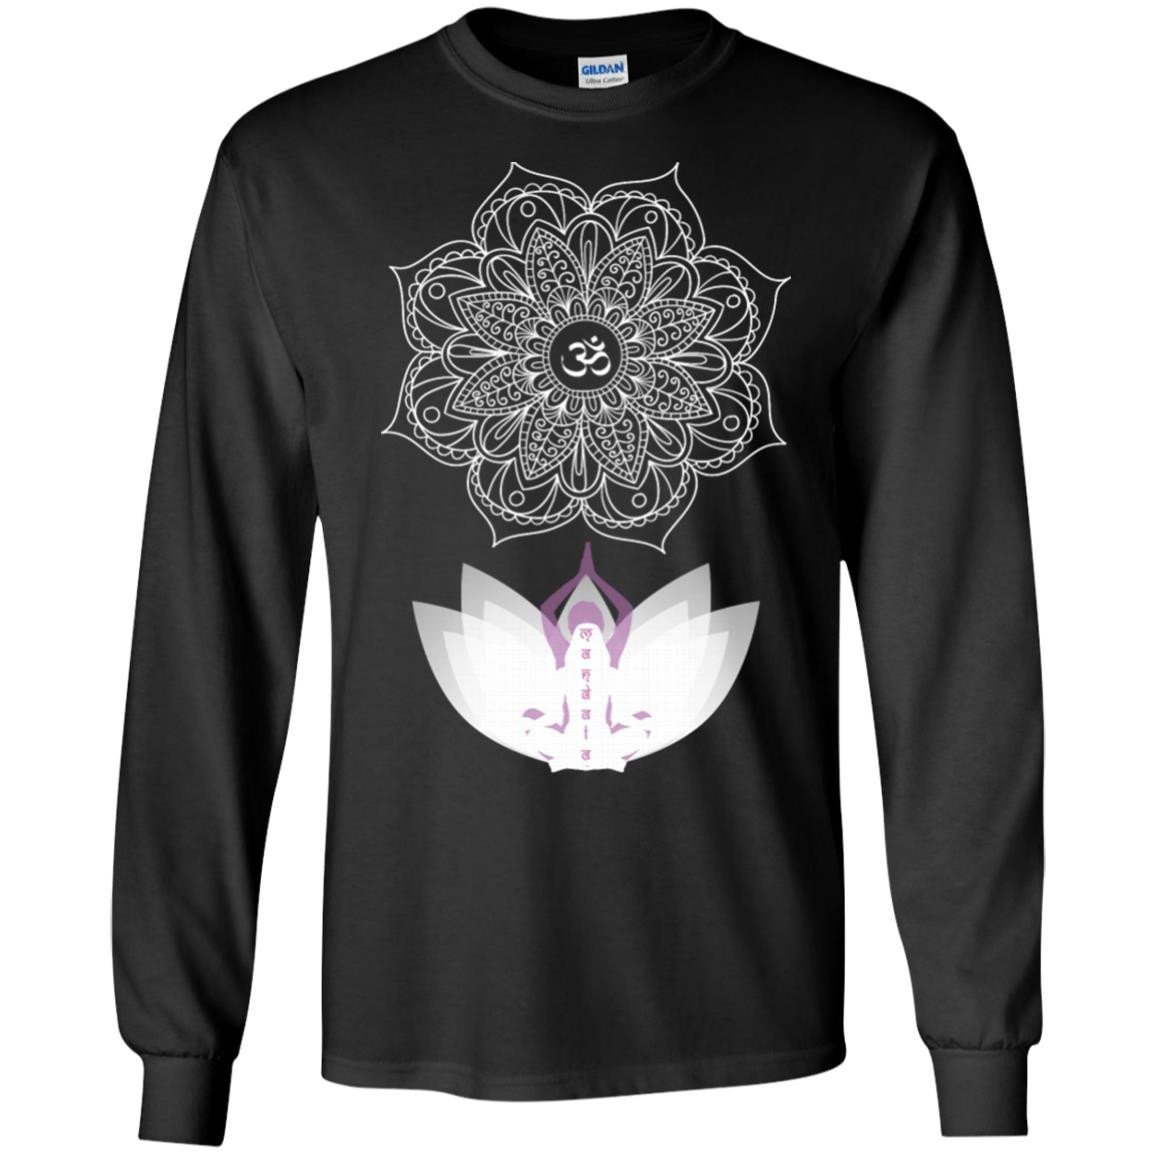 Yoga Awesome Yoga For Yoga Lovers T-Shirt Long Sleeve 240